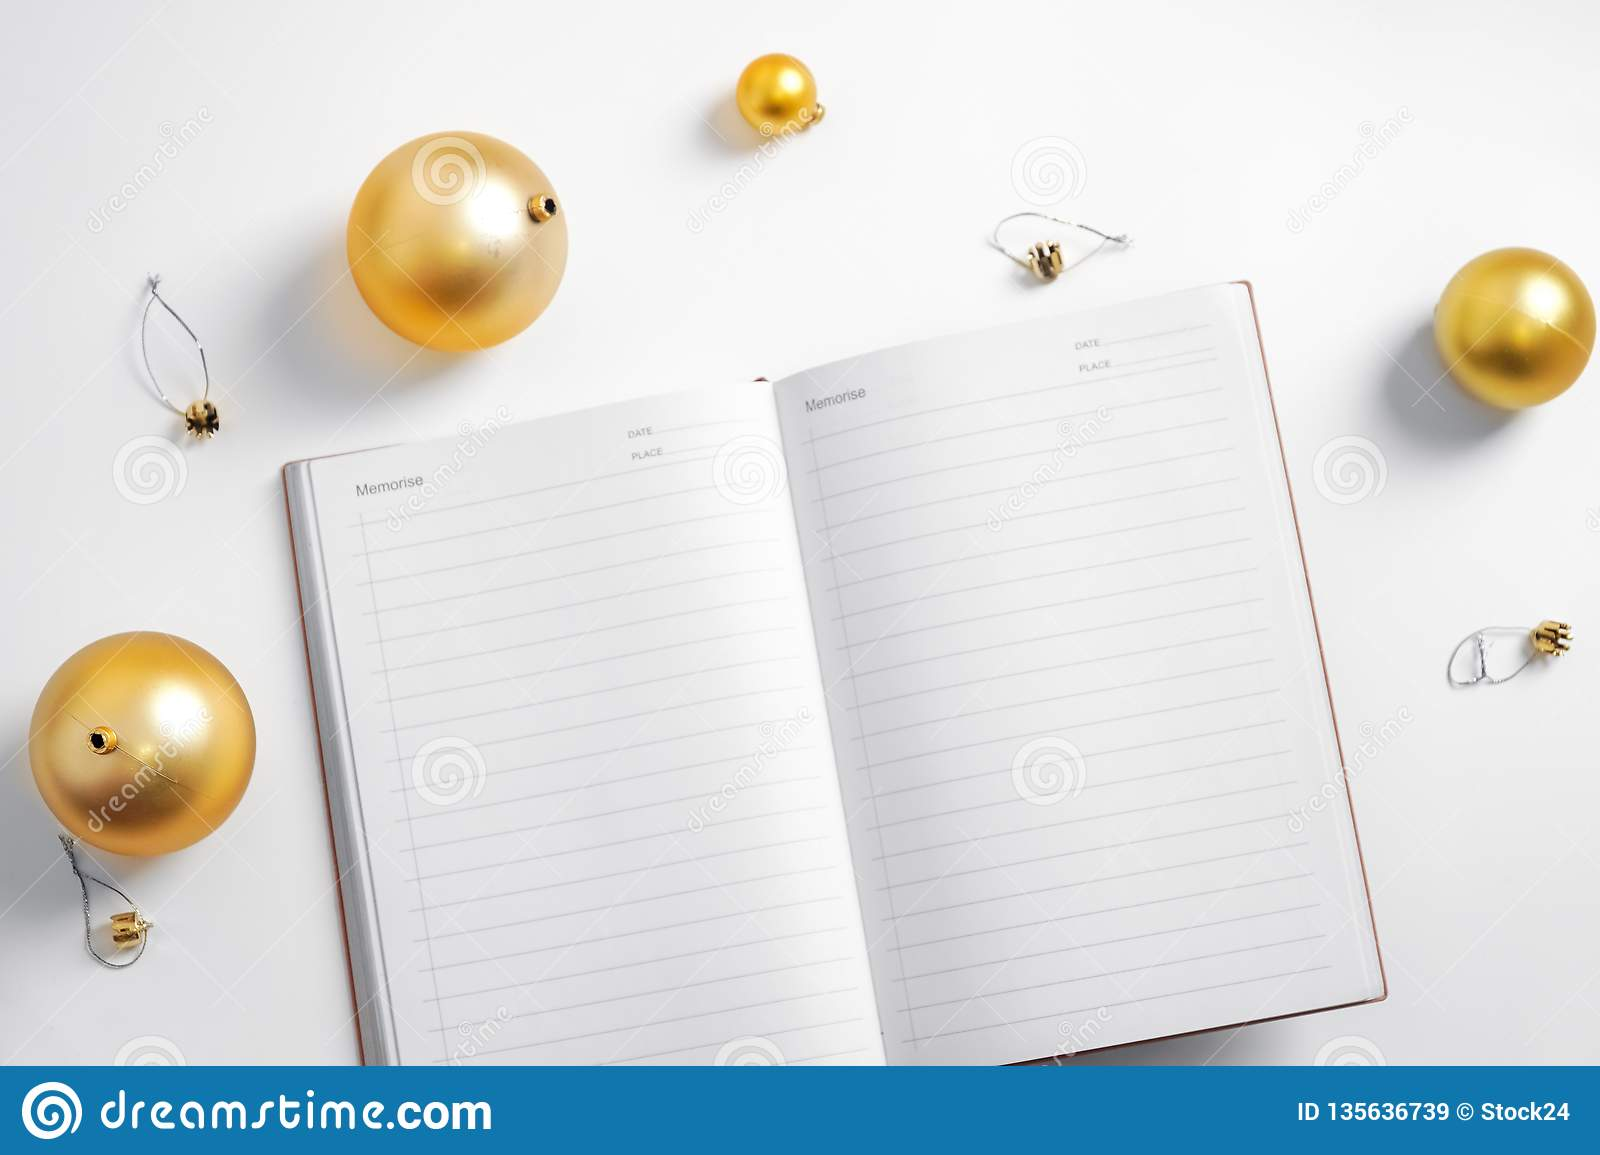 White background notepad hand writing new year resolution golden ball planning life smart goals